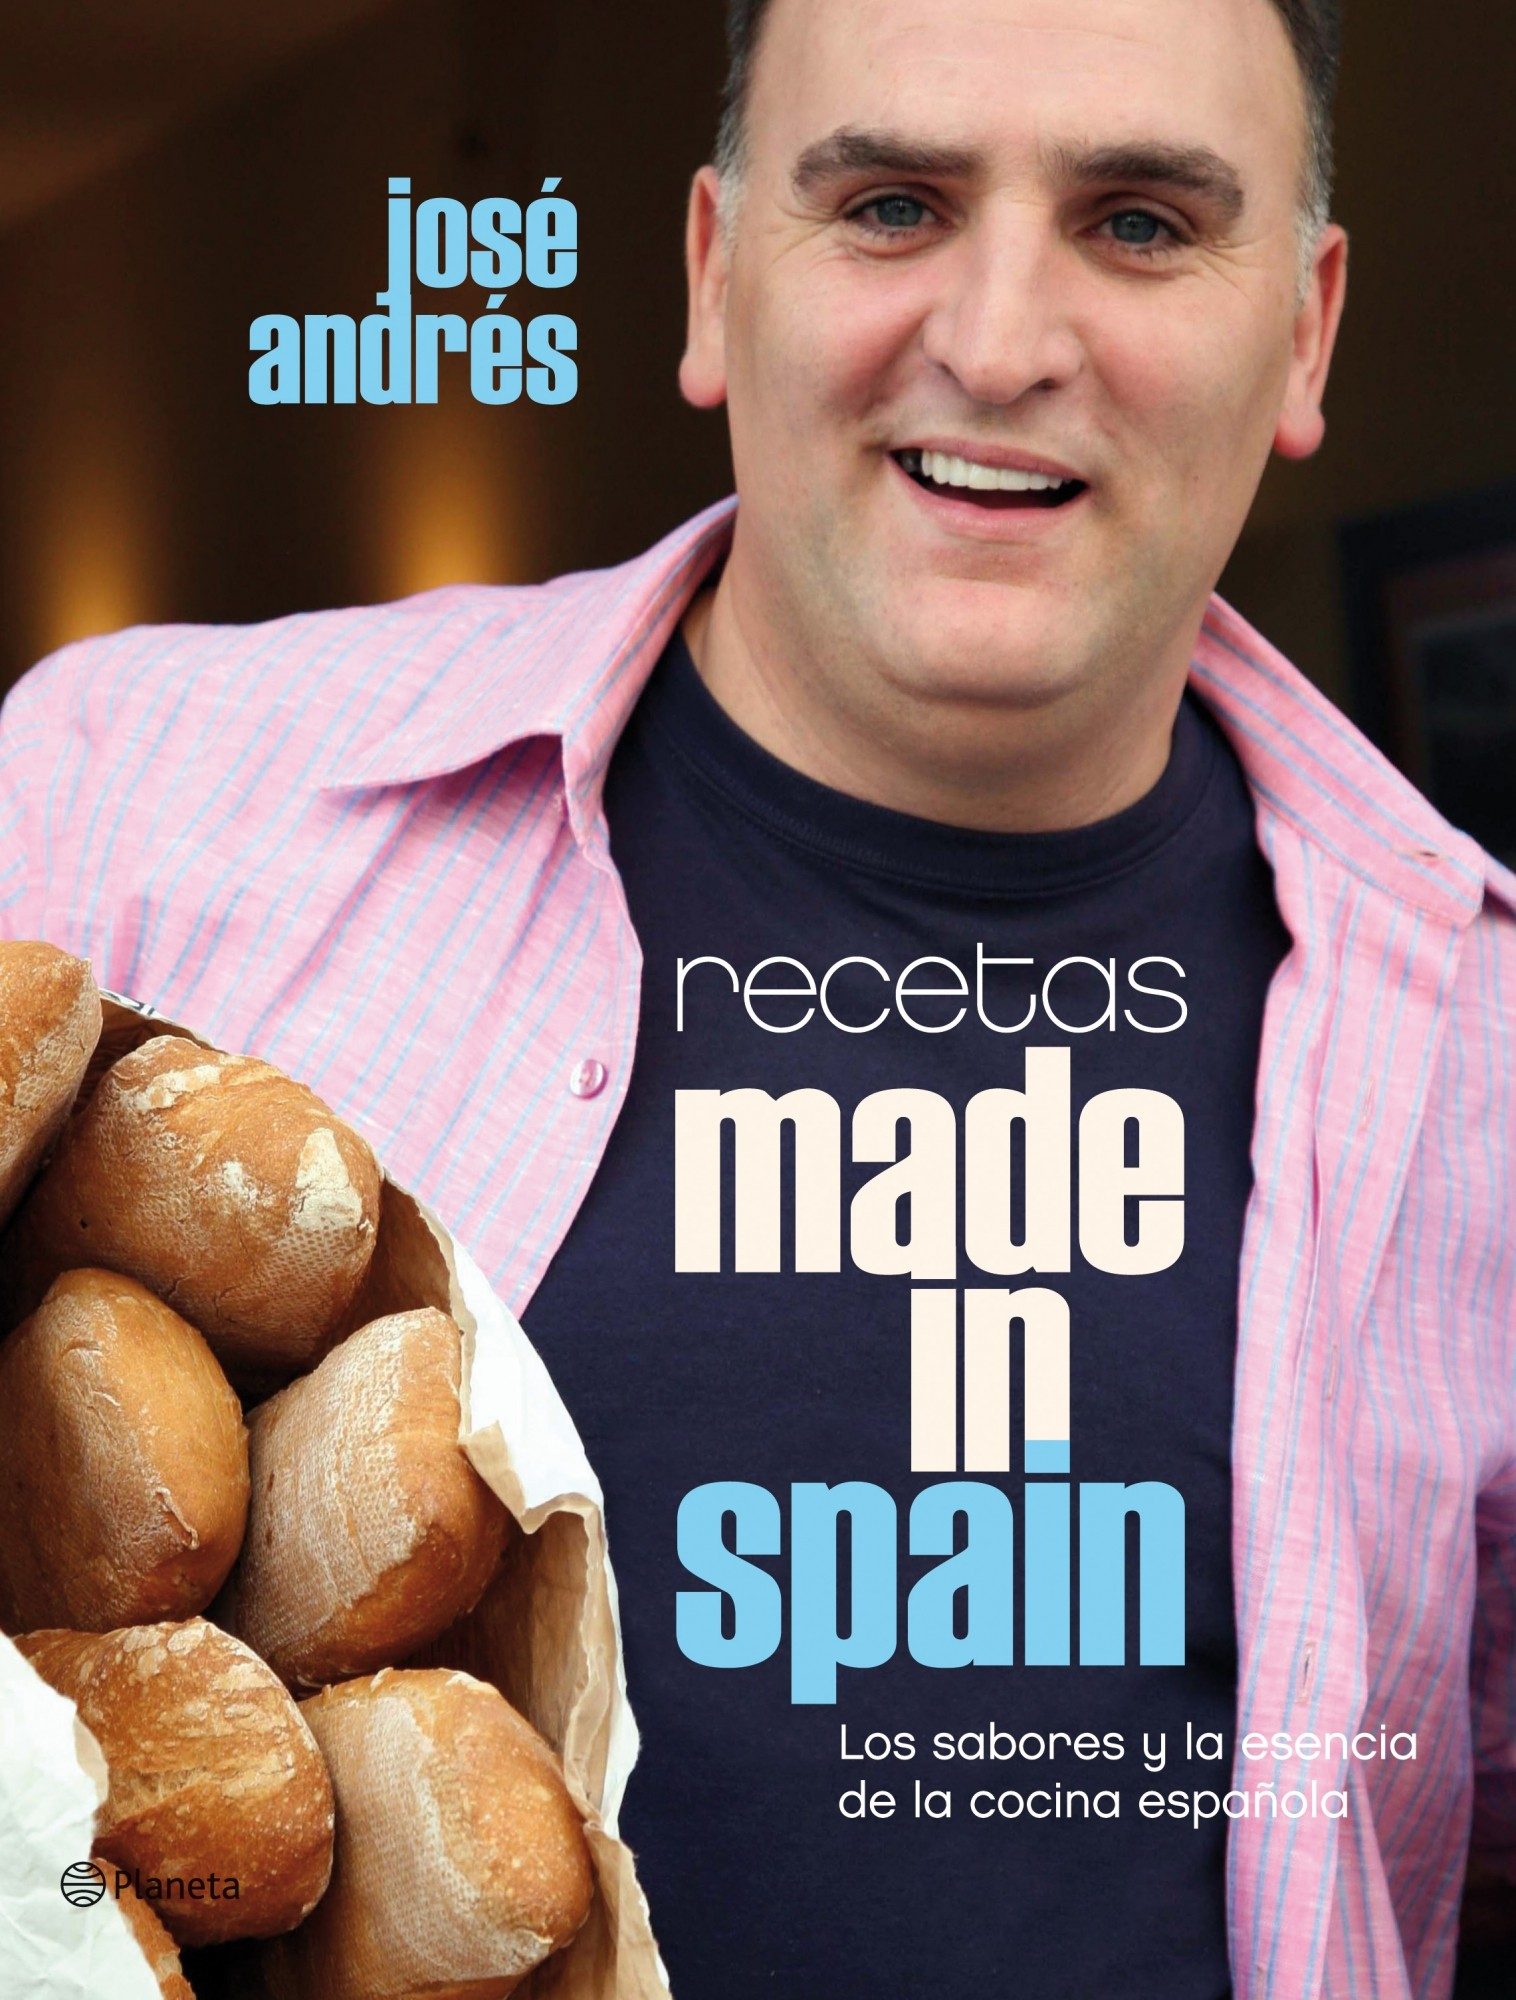 José Andrés Liblro recetas Made in Spain